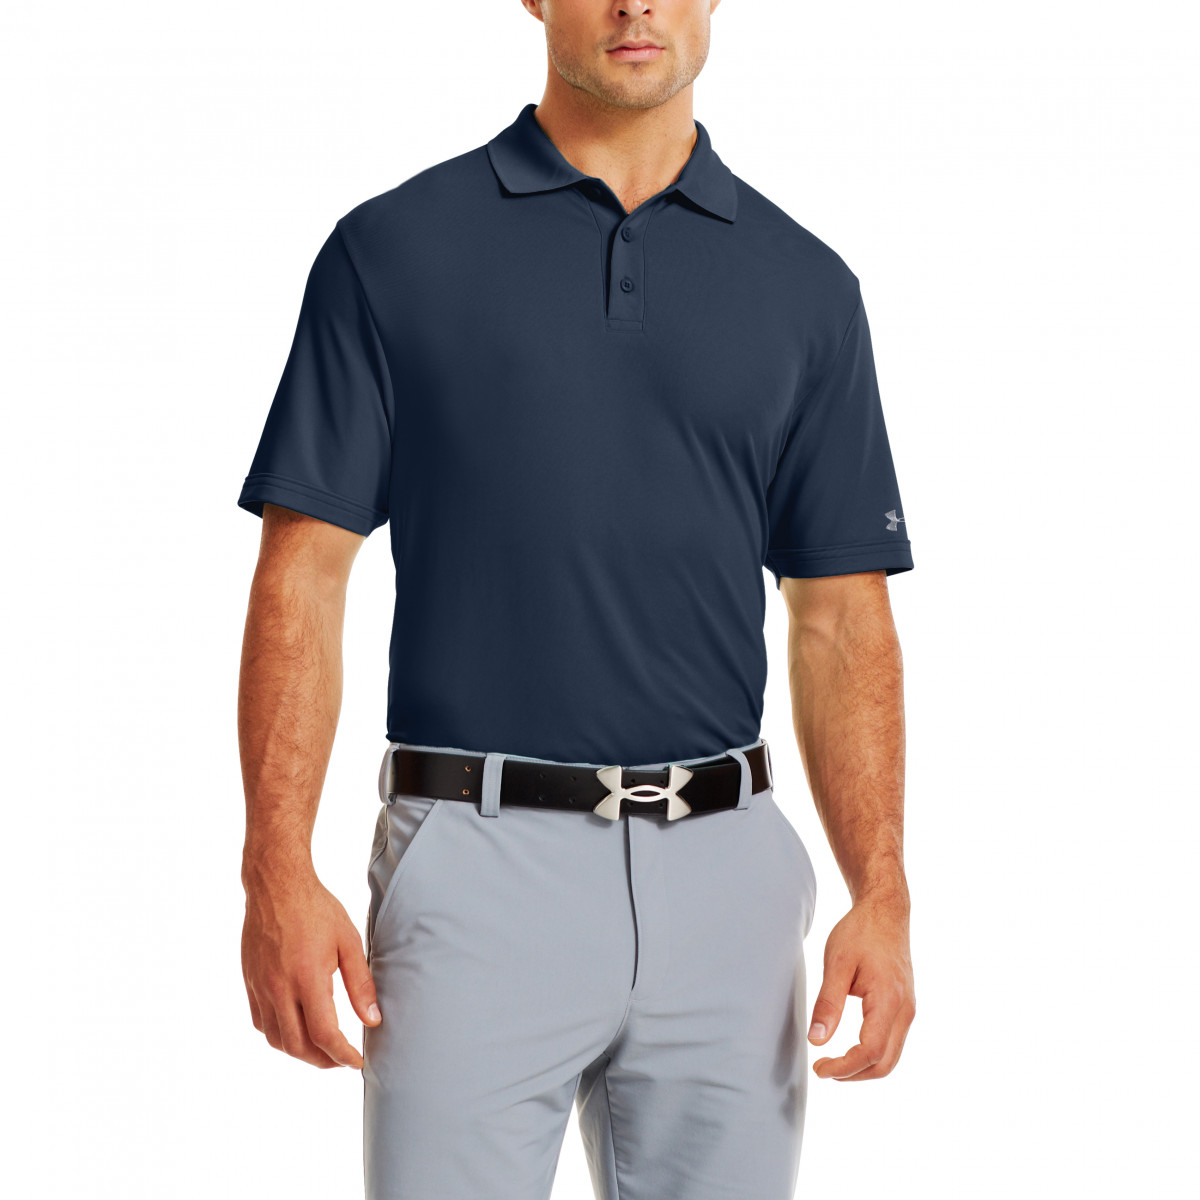 7413839ac Under Armour Mens Medal Play Performance Golf Polo Shirt